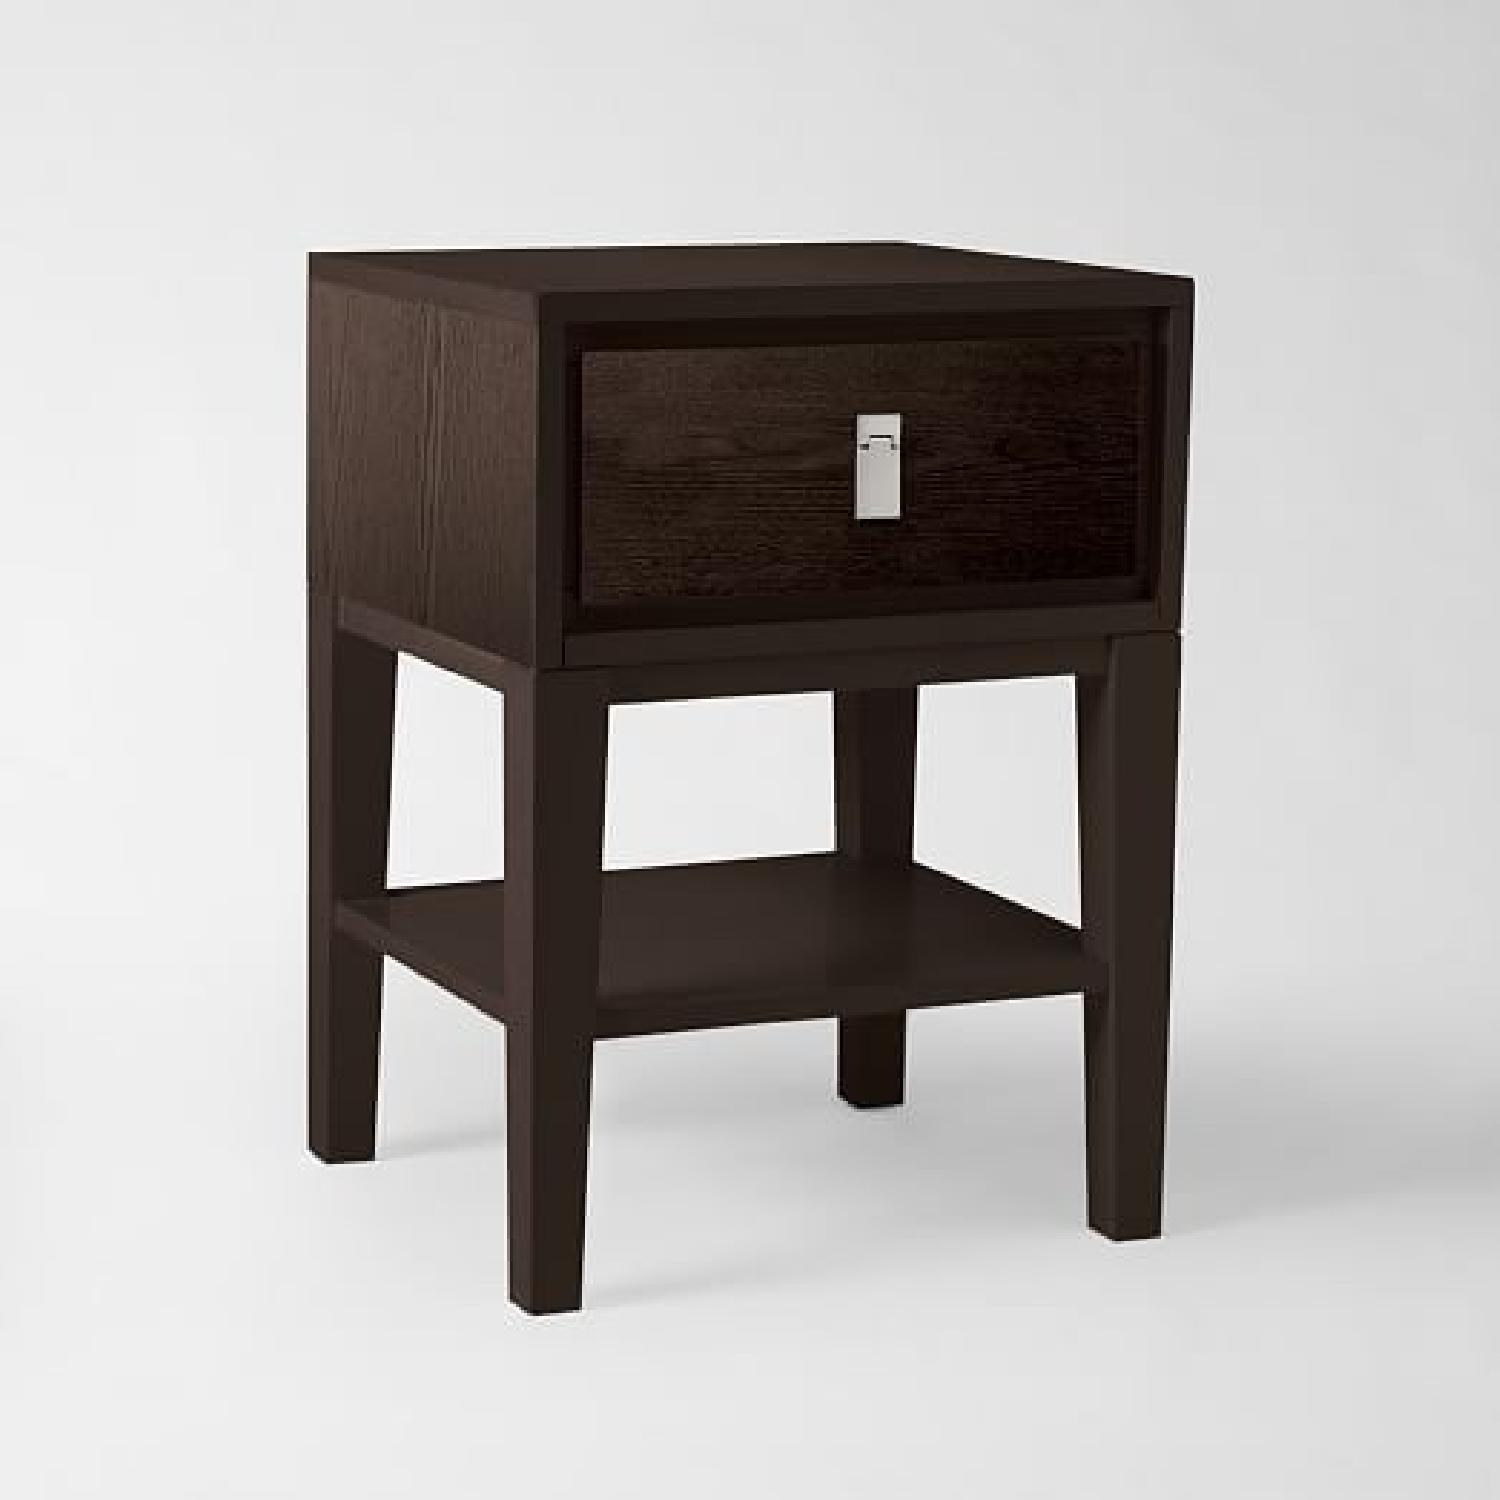 West Elm Niche Nighstand in Chocolate - image-1